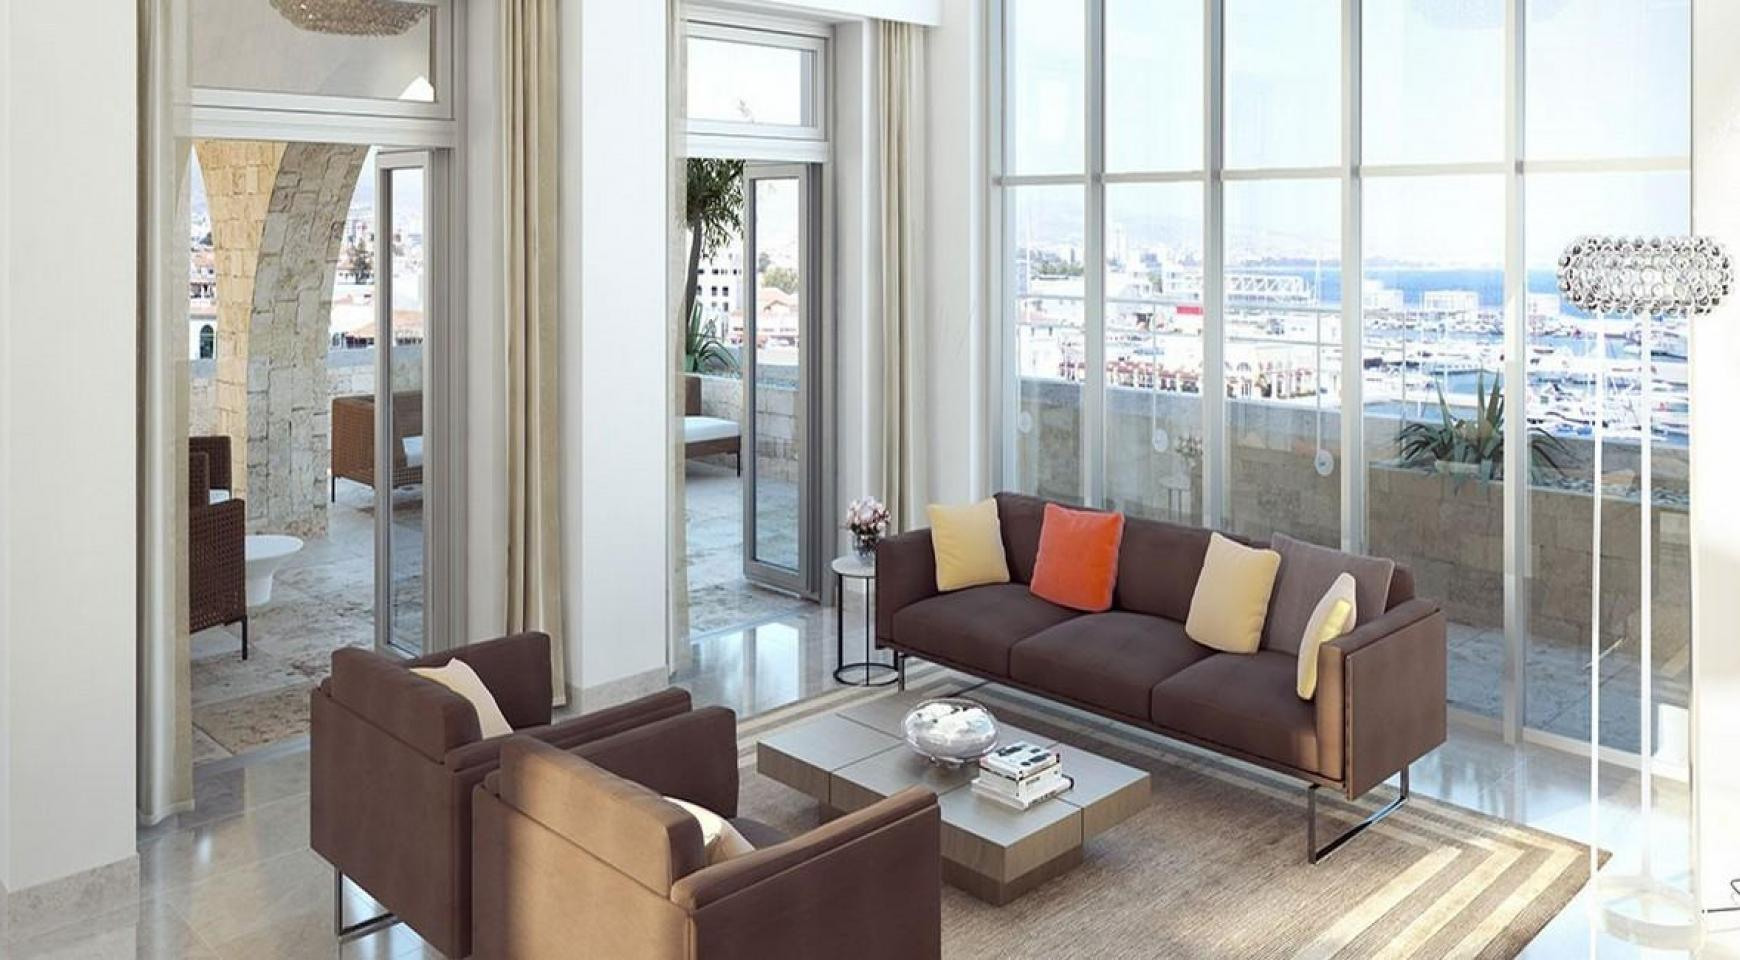 3 Bedroom Apartment in an Exclusive Project on the Sea - 4